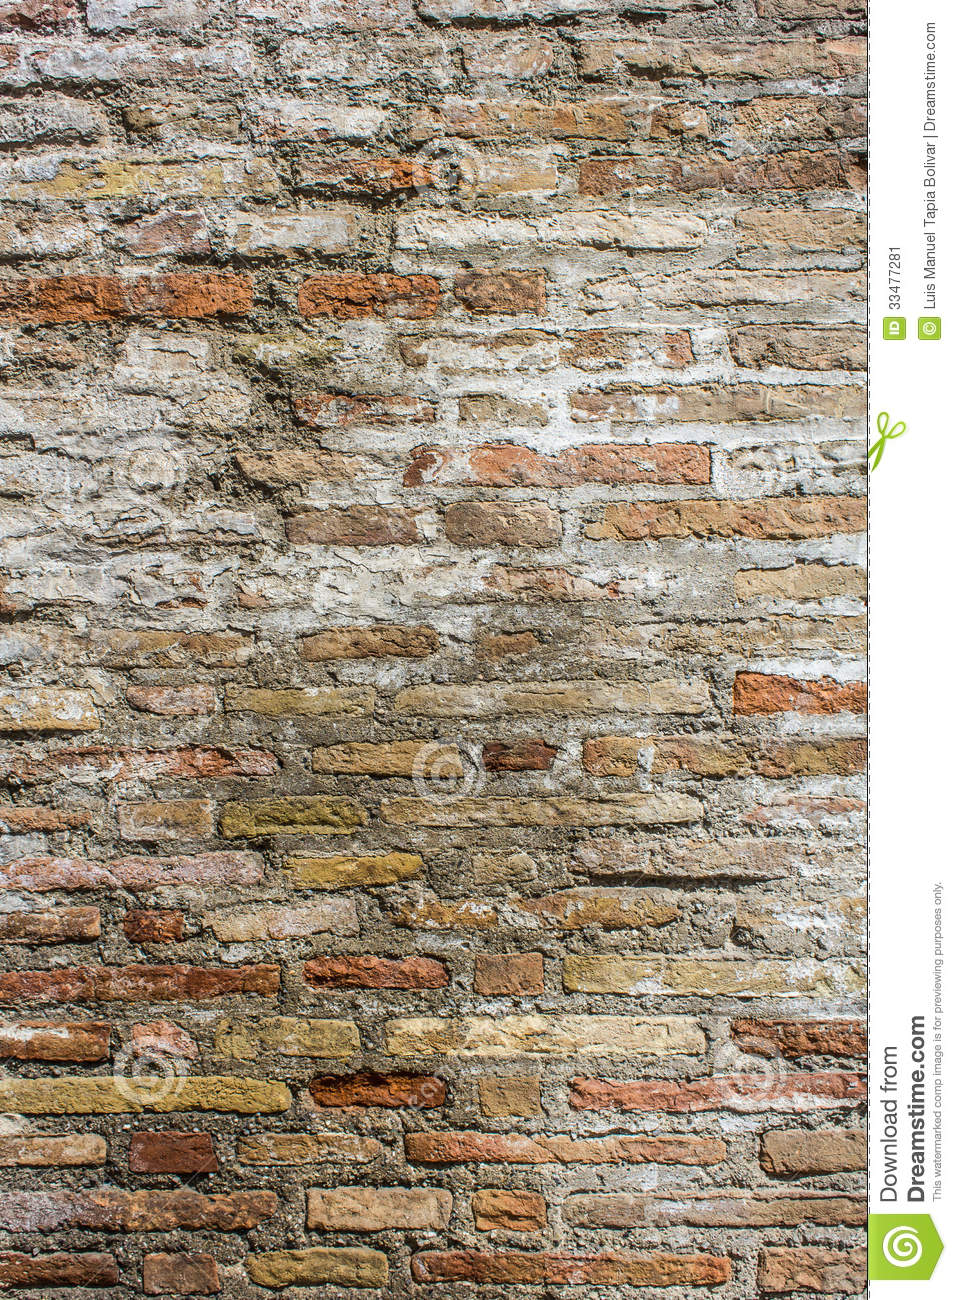 Rustic Brick Texture Stock Image   Image  33477281